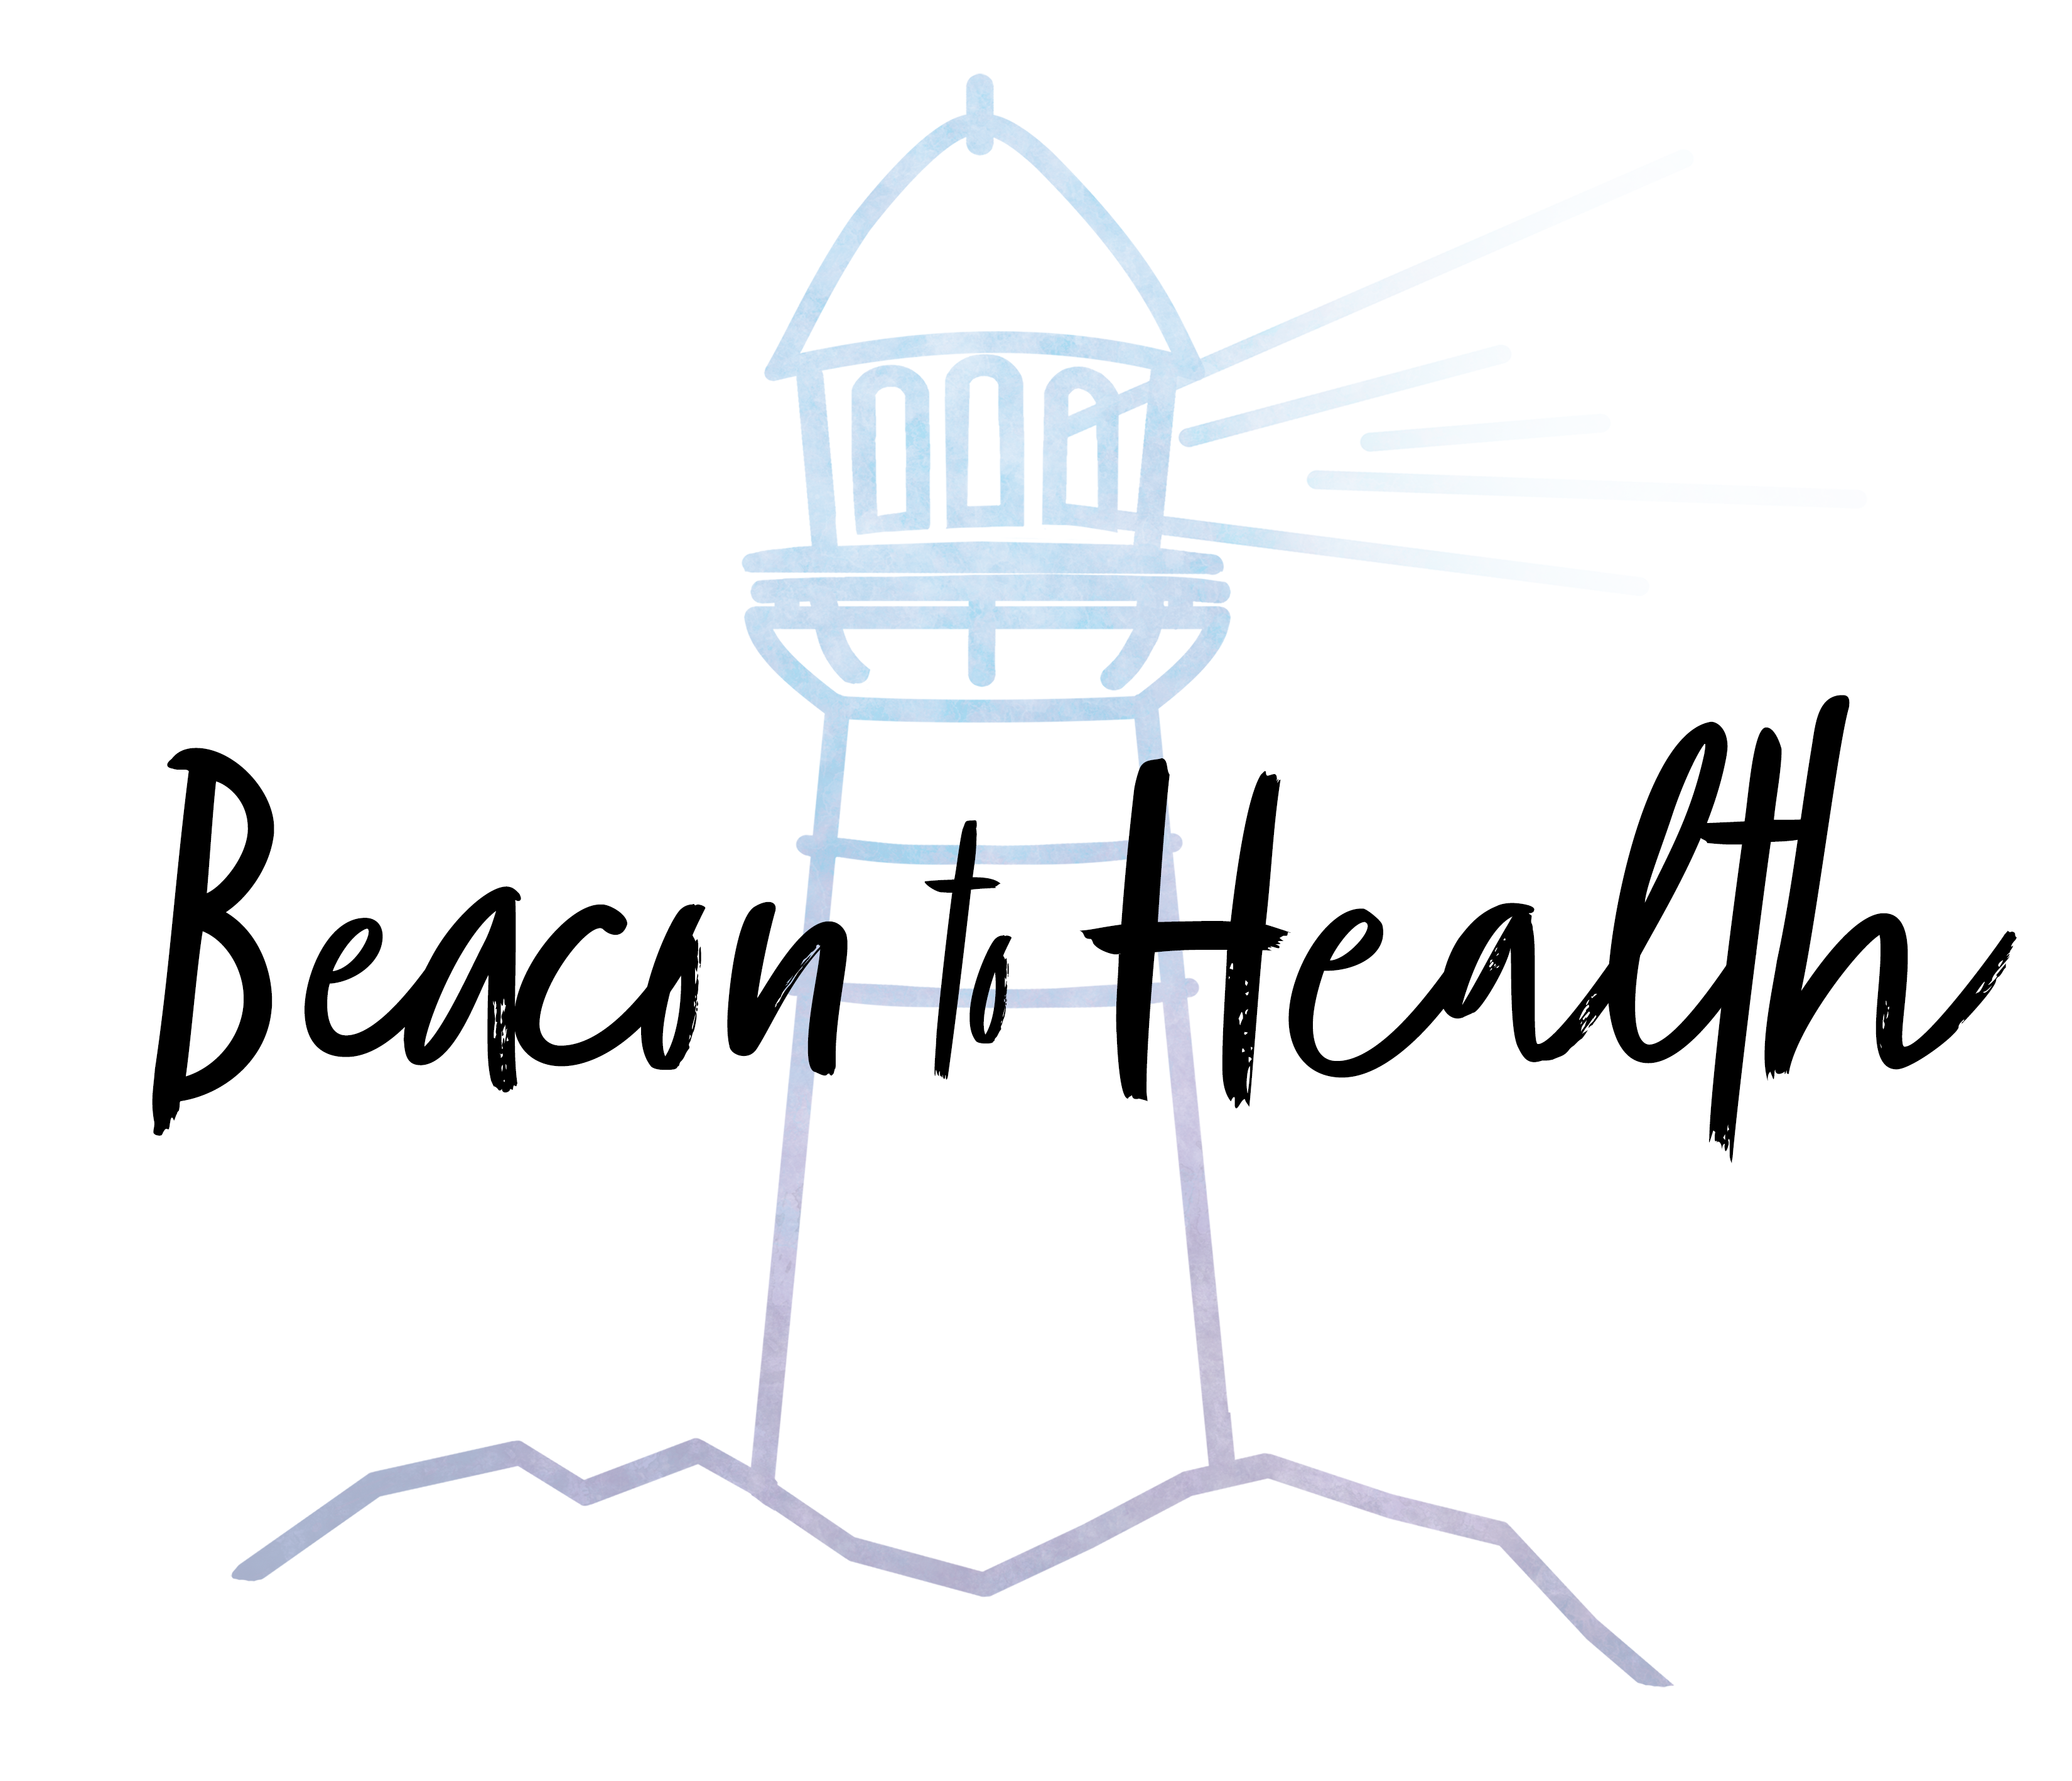 Beacon To Health